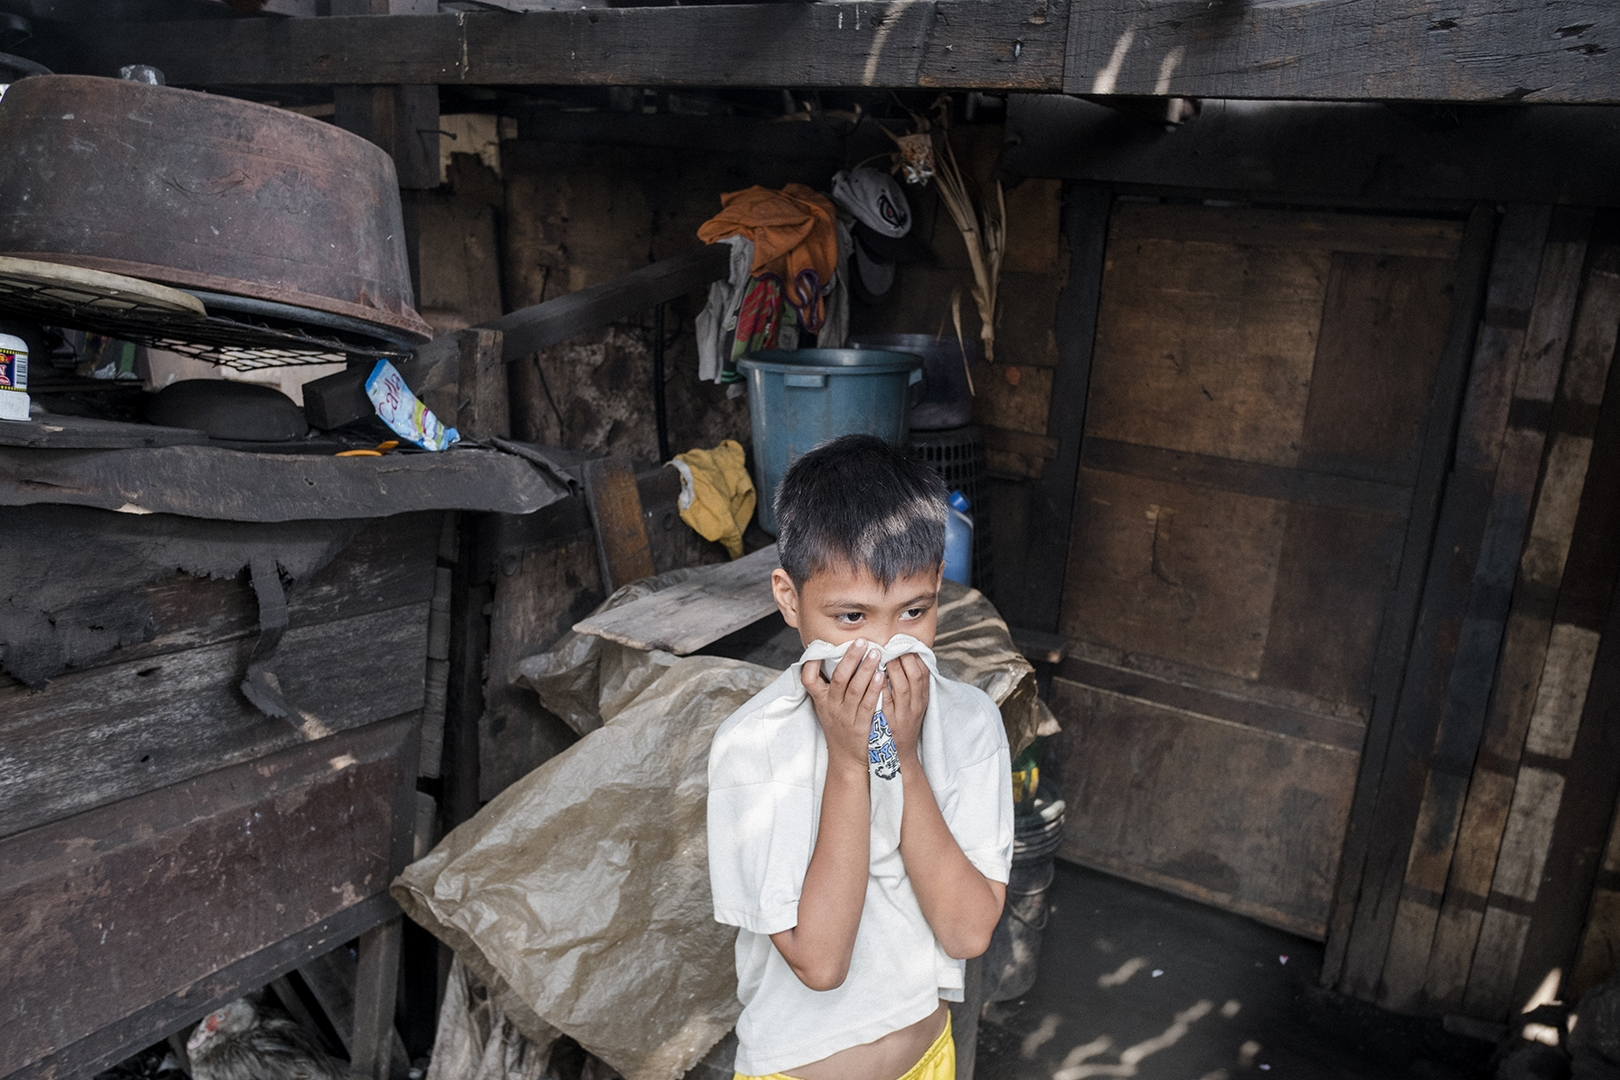 Boy who visits his uncle in the Ulingan community in Malabon covers his face to protect himself from the smoke floating in the air. Malabon, Philippines, 2017